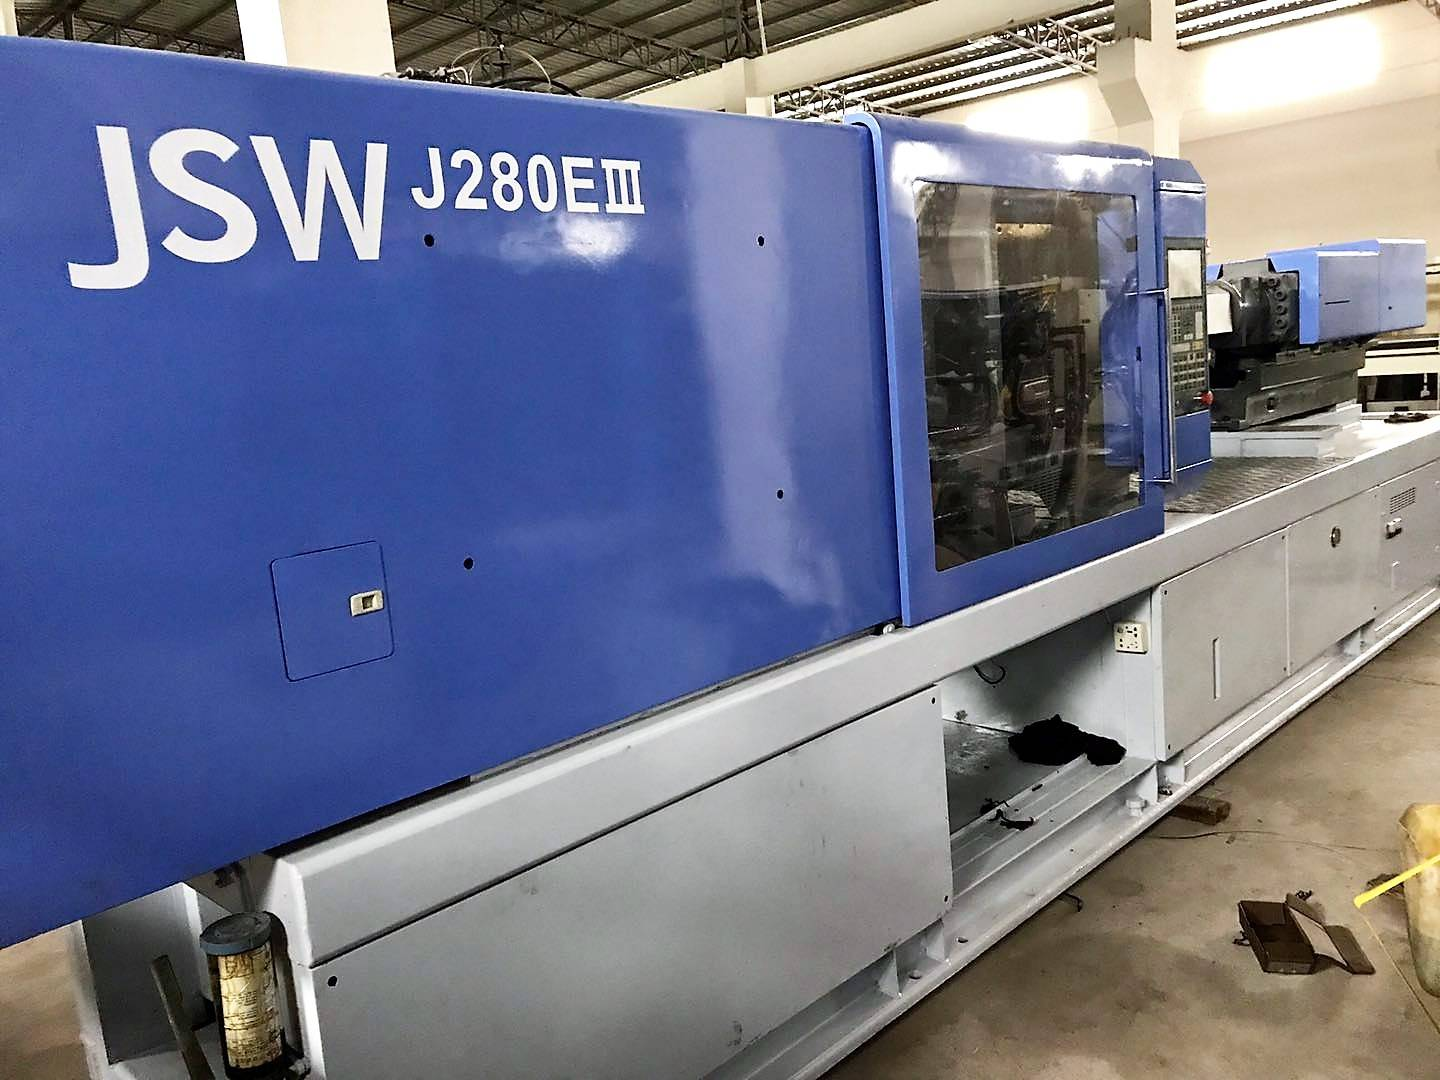 JSW280t (J280EIII) used Injection Molding Machine Featured Image